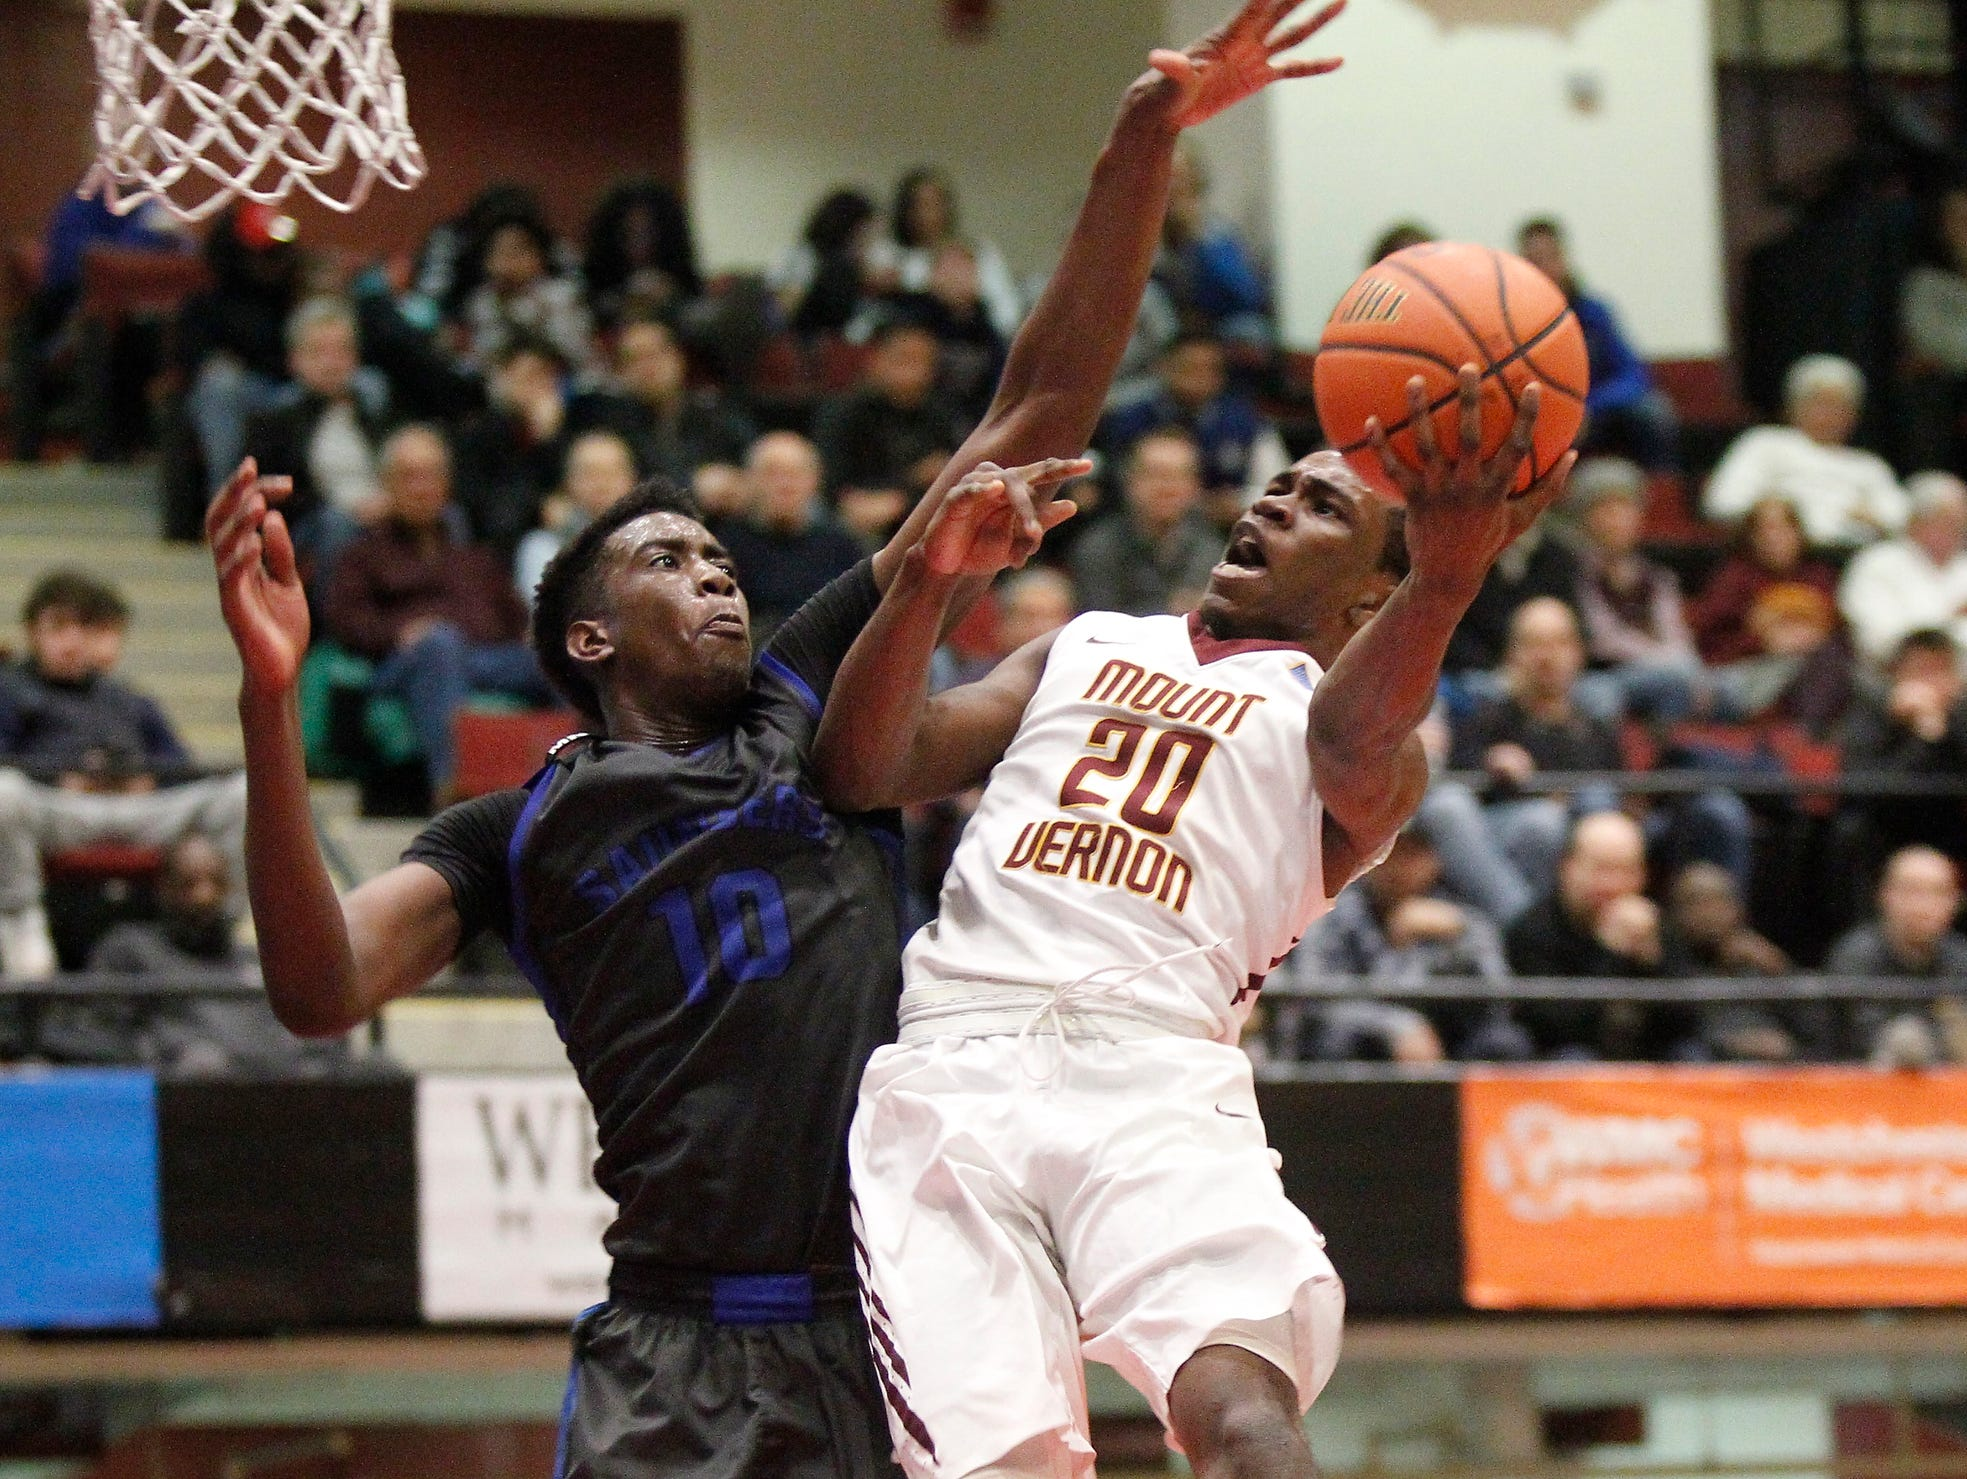 Mount Vernon's Marco Morency (20) puts up a shot as Saunders' Vaughndras Lennon (10) defends during the boys Class AA semi-final basketball game at the County Center in White Plains on Friday, February 26, 2016.